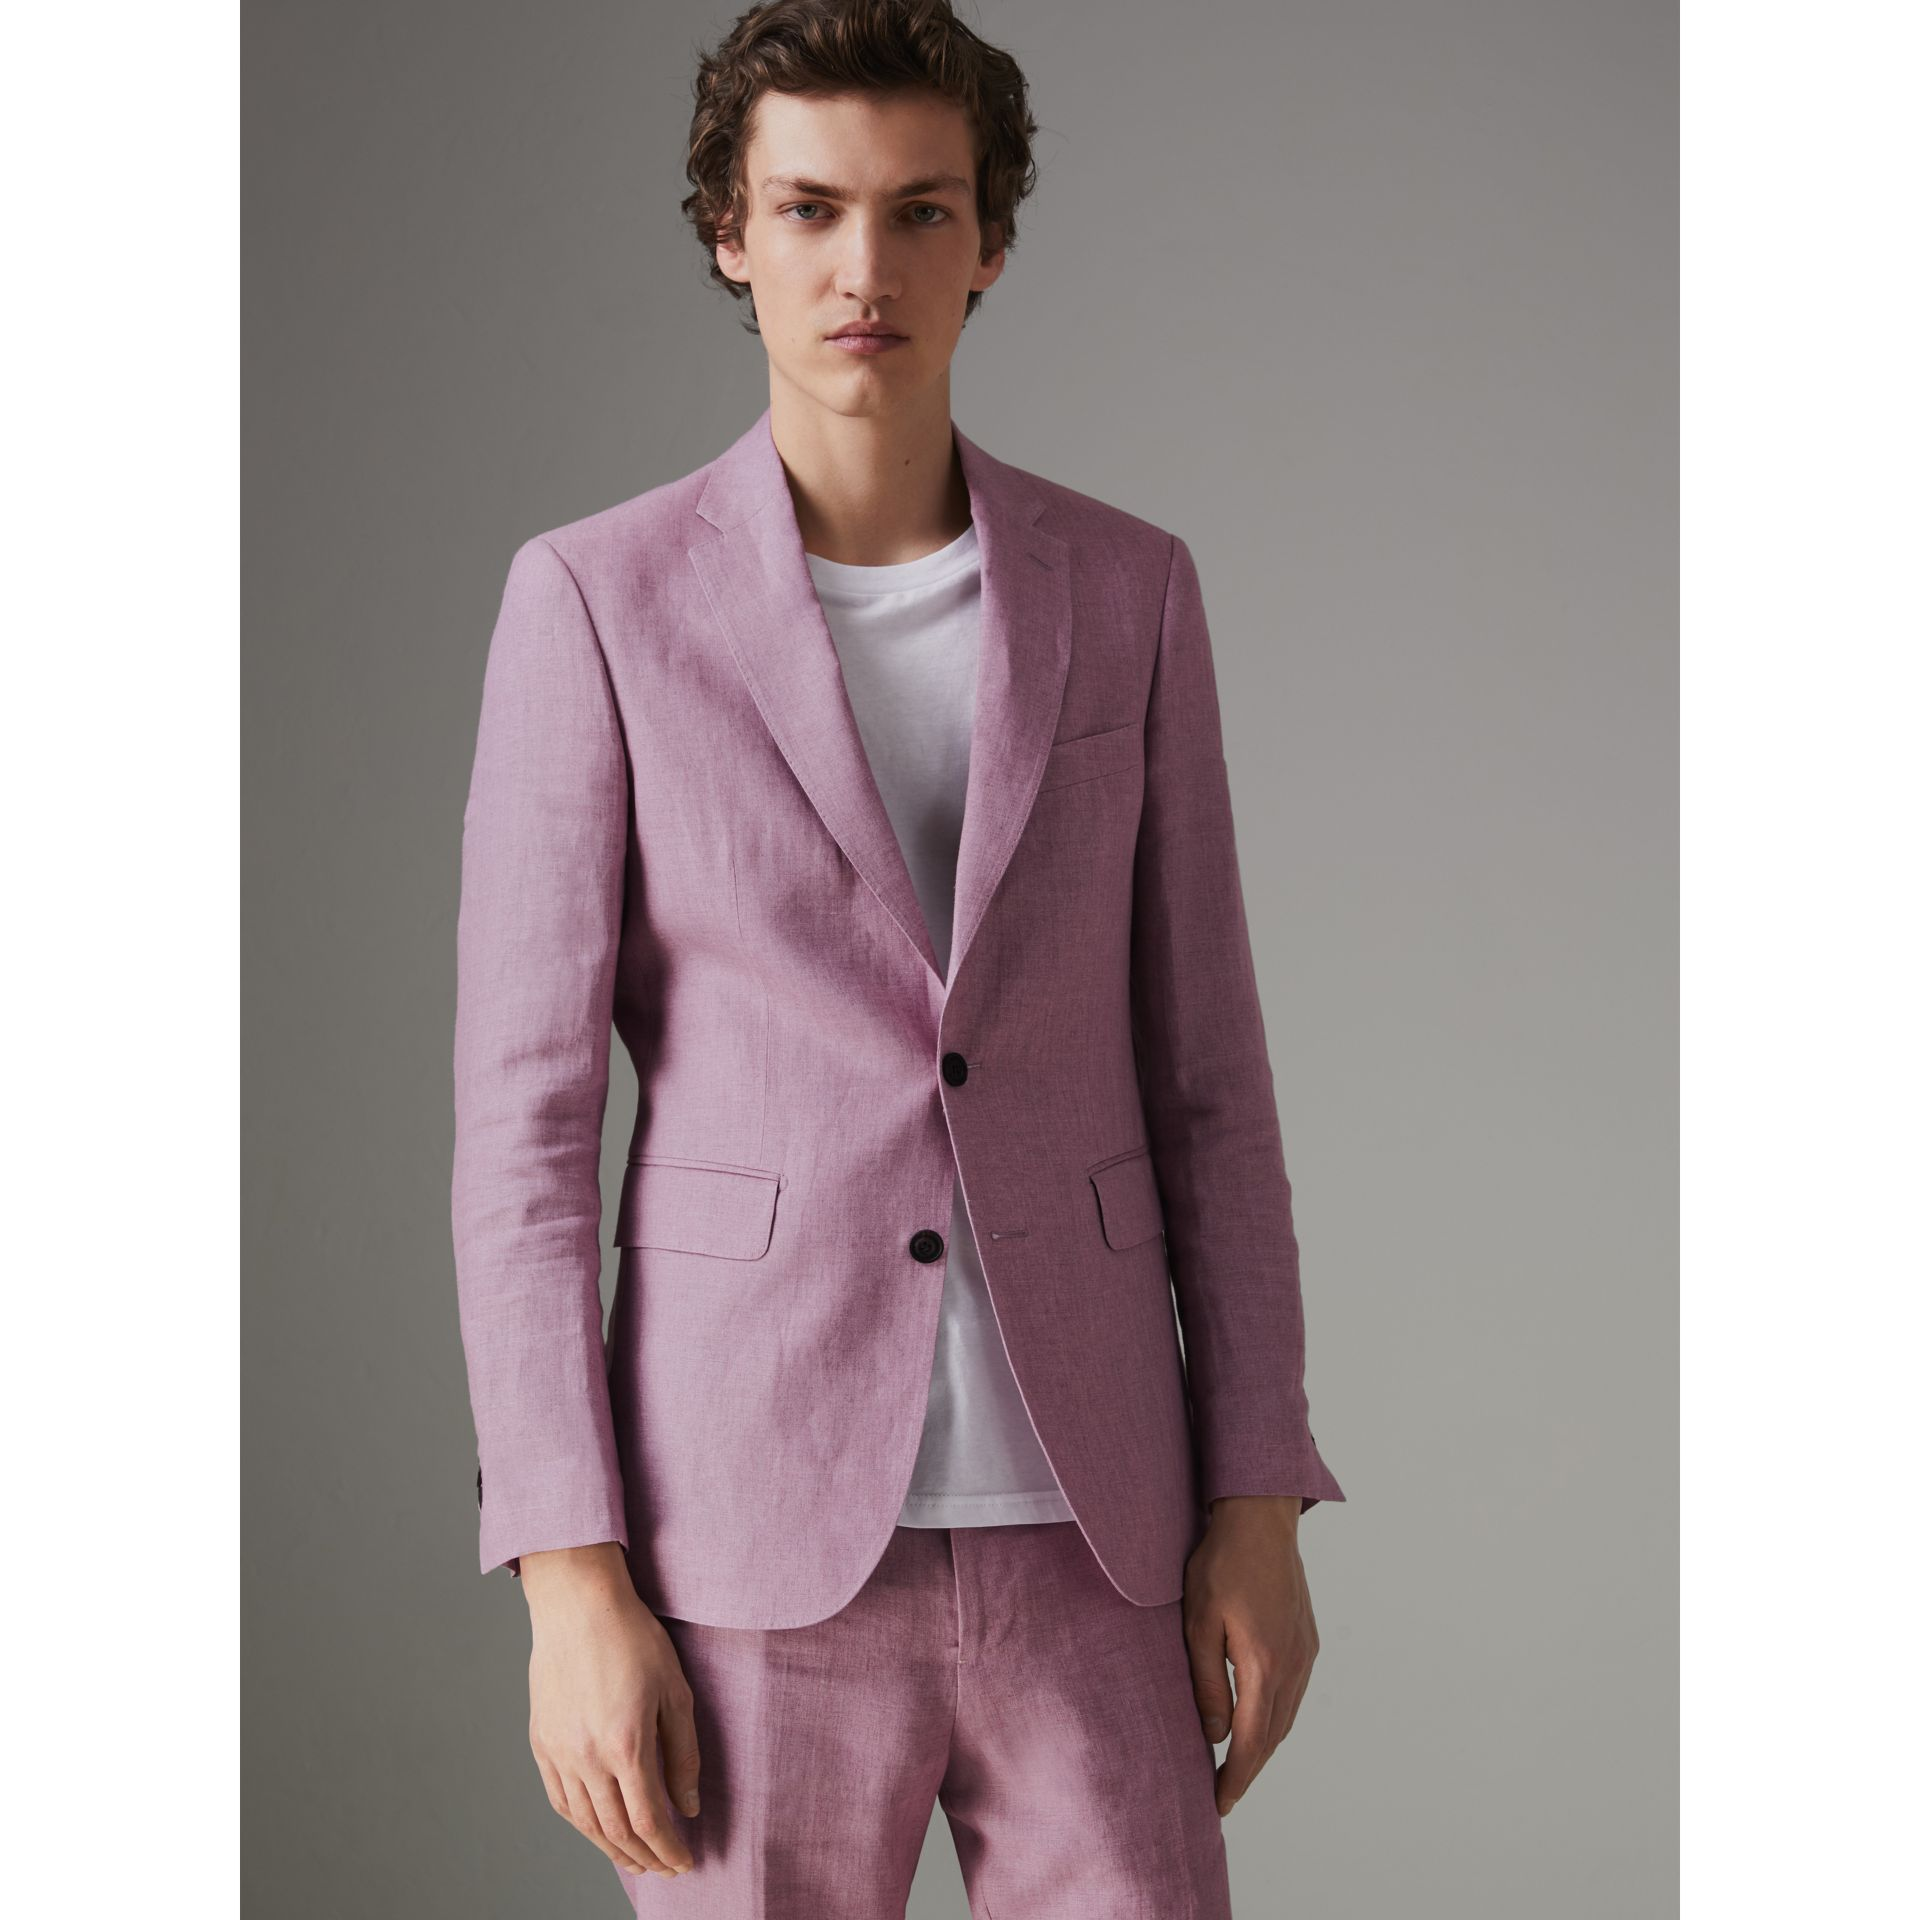 Soho Fit Linen Tailored Jacket in Pink Heather - Men | Burberry Australia - gallery image 5